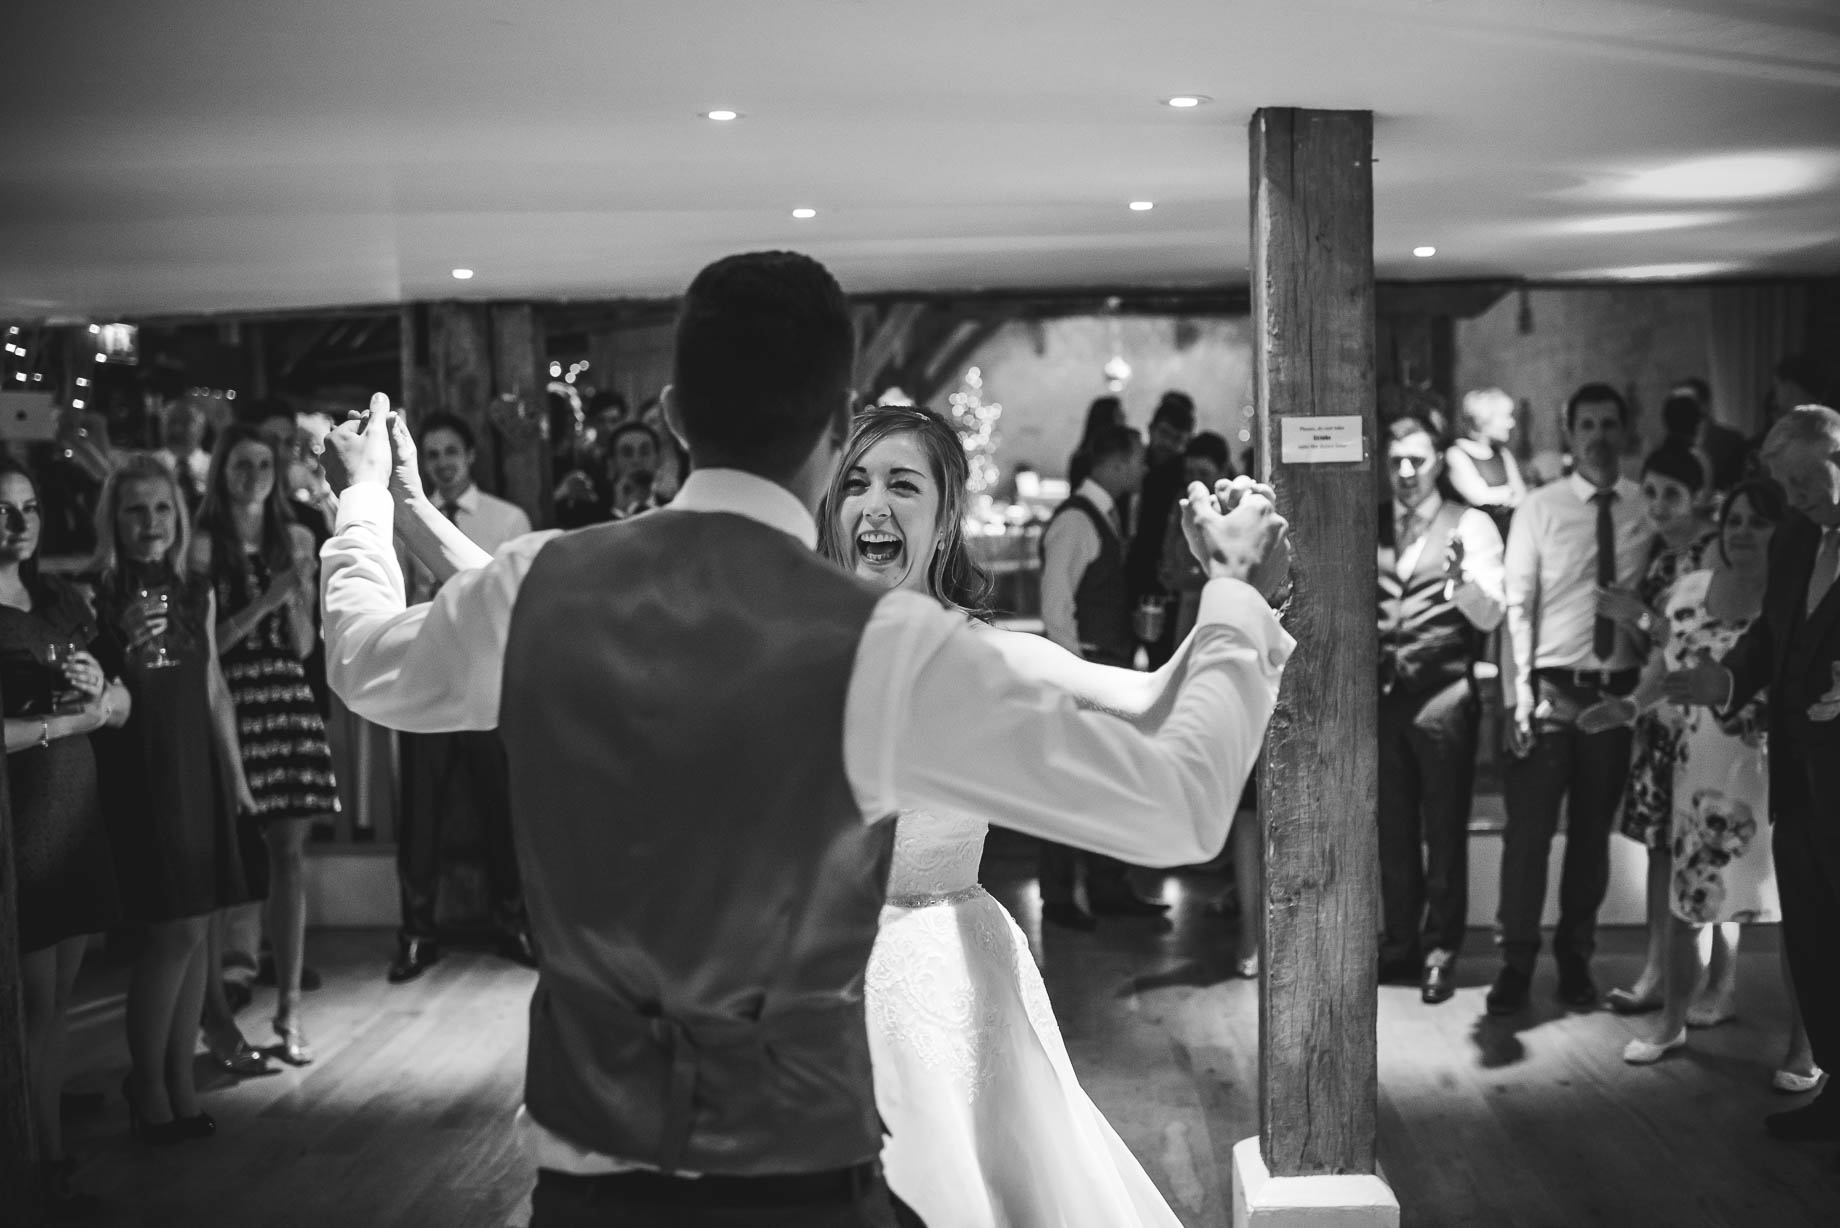 Bury Court Barn wedding photography - Guy Collier - Kirsty and Lewis (143 of 150)